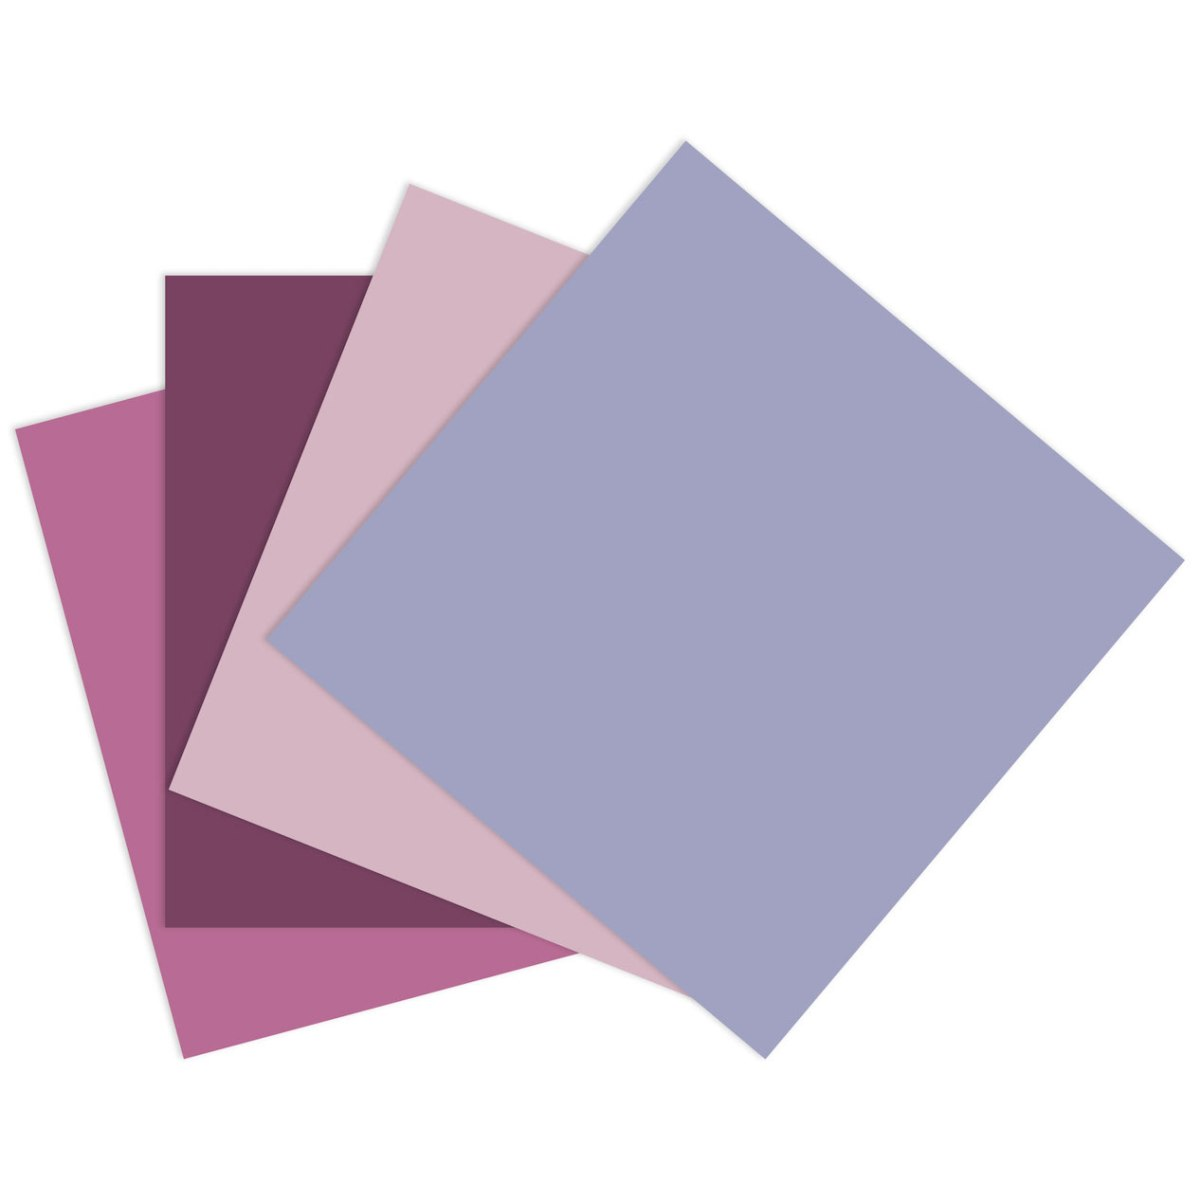 Cardstock Carnival #ctmh #closetomyheart #cardstock #exclusivecolorpalette #exclusivecolourpalatte #ctmhcolors #cmthcolours #thistle #eggplant #lilac #wisteria